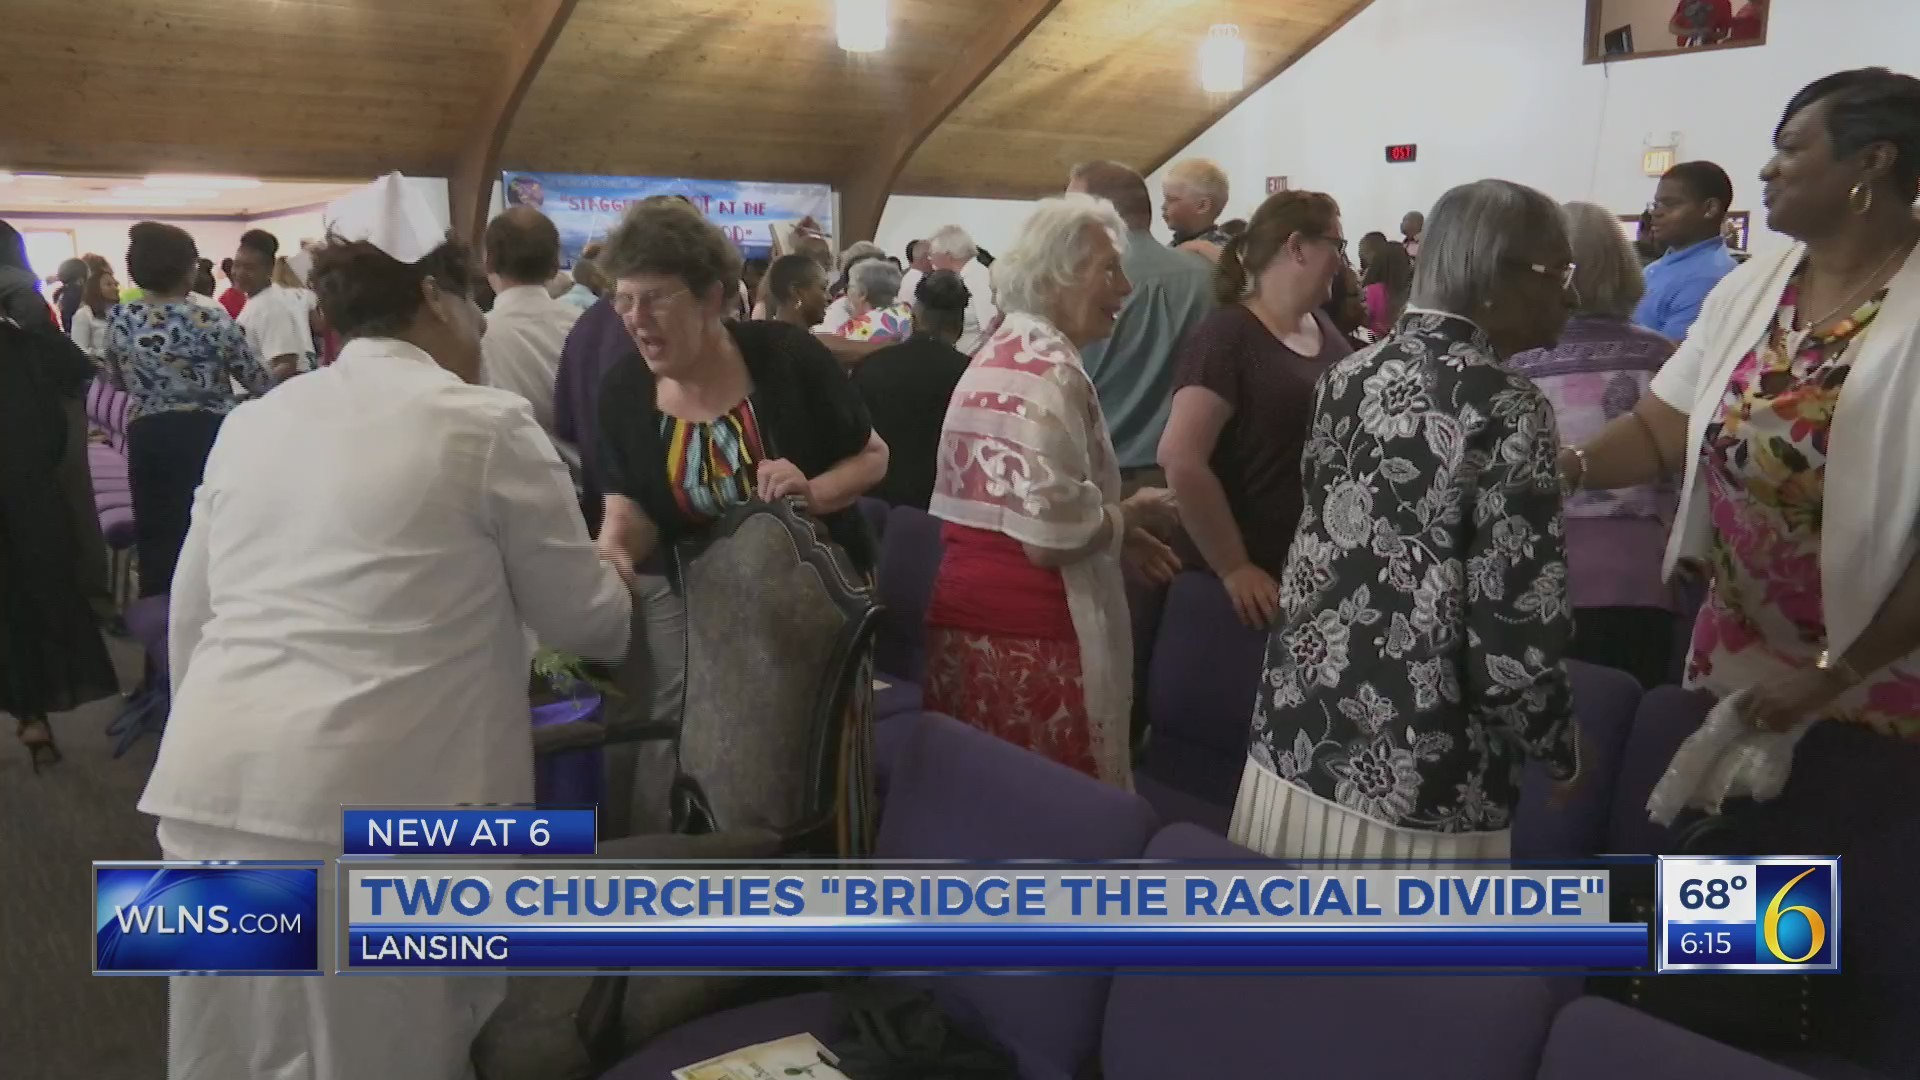 Churches work to bridge racial divide